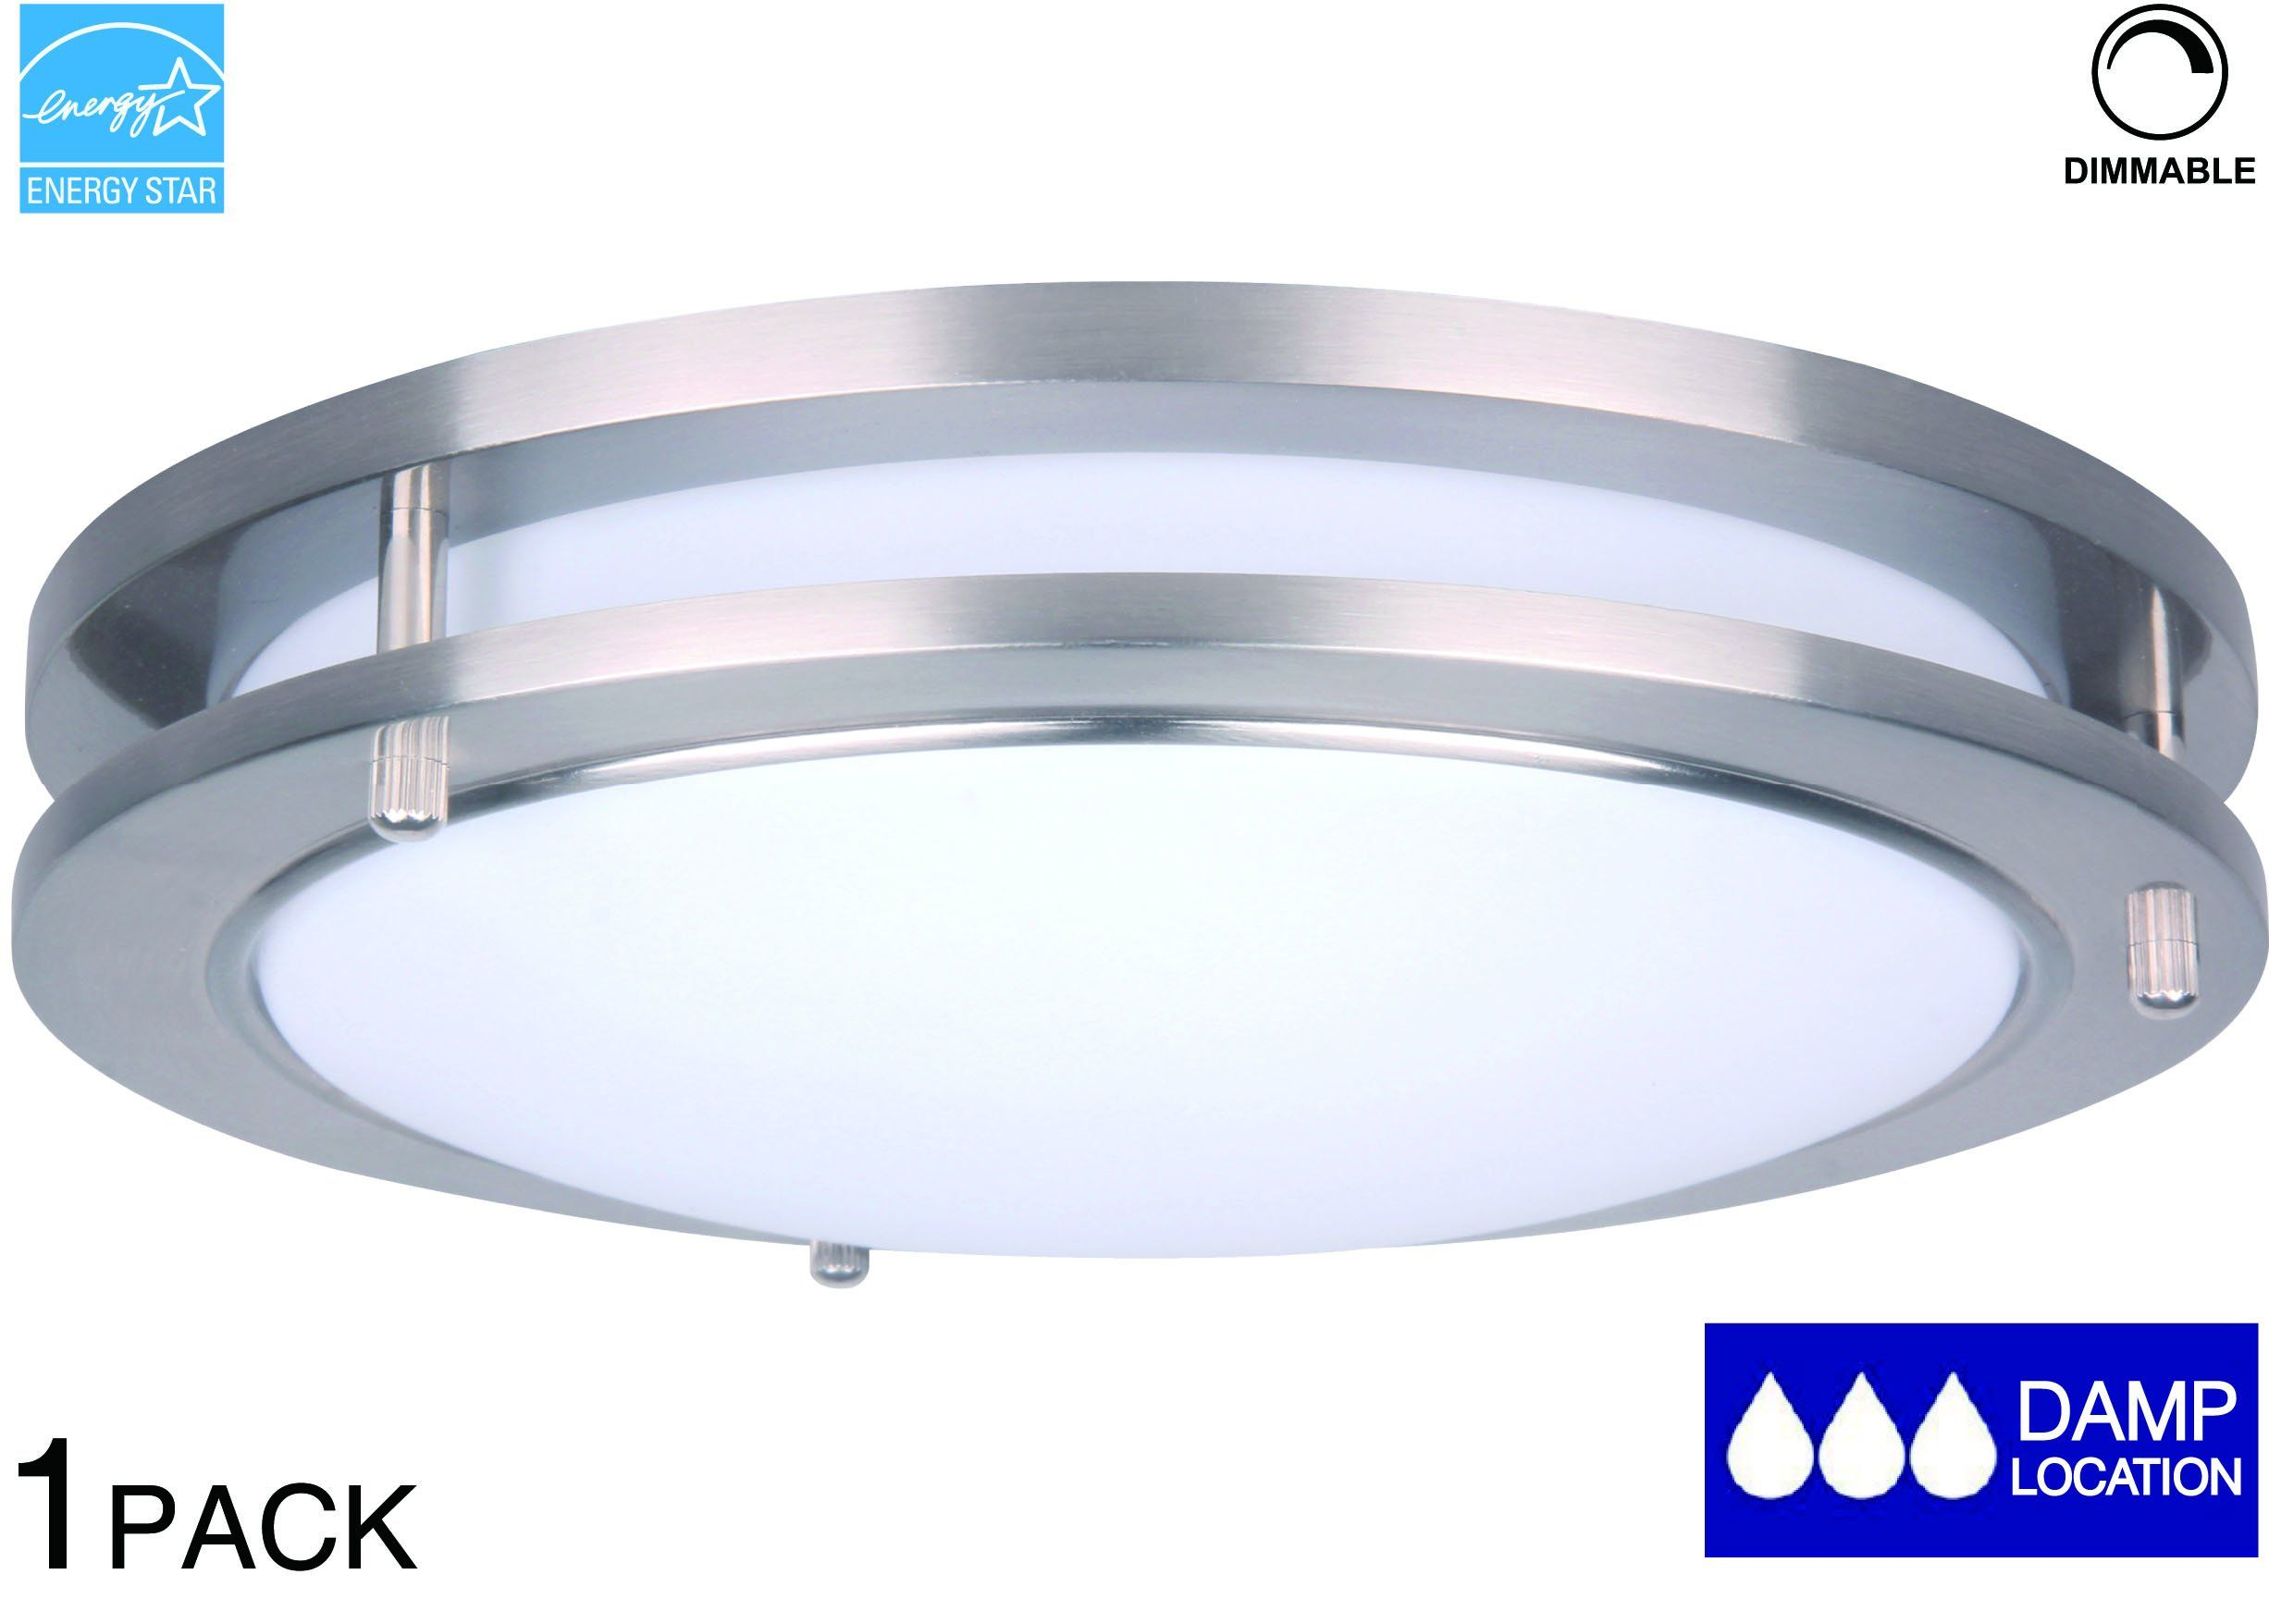 Lit Path 10 Inch Dimmable Led Flush Mount Ceiling Lighting Fixture 14w Replace 100w 994 Lumen Satin Nickel Finish Etl And Es Qualified Led Flush Mount Flush Mount Ceiling Light Fixtures Dimmable Led